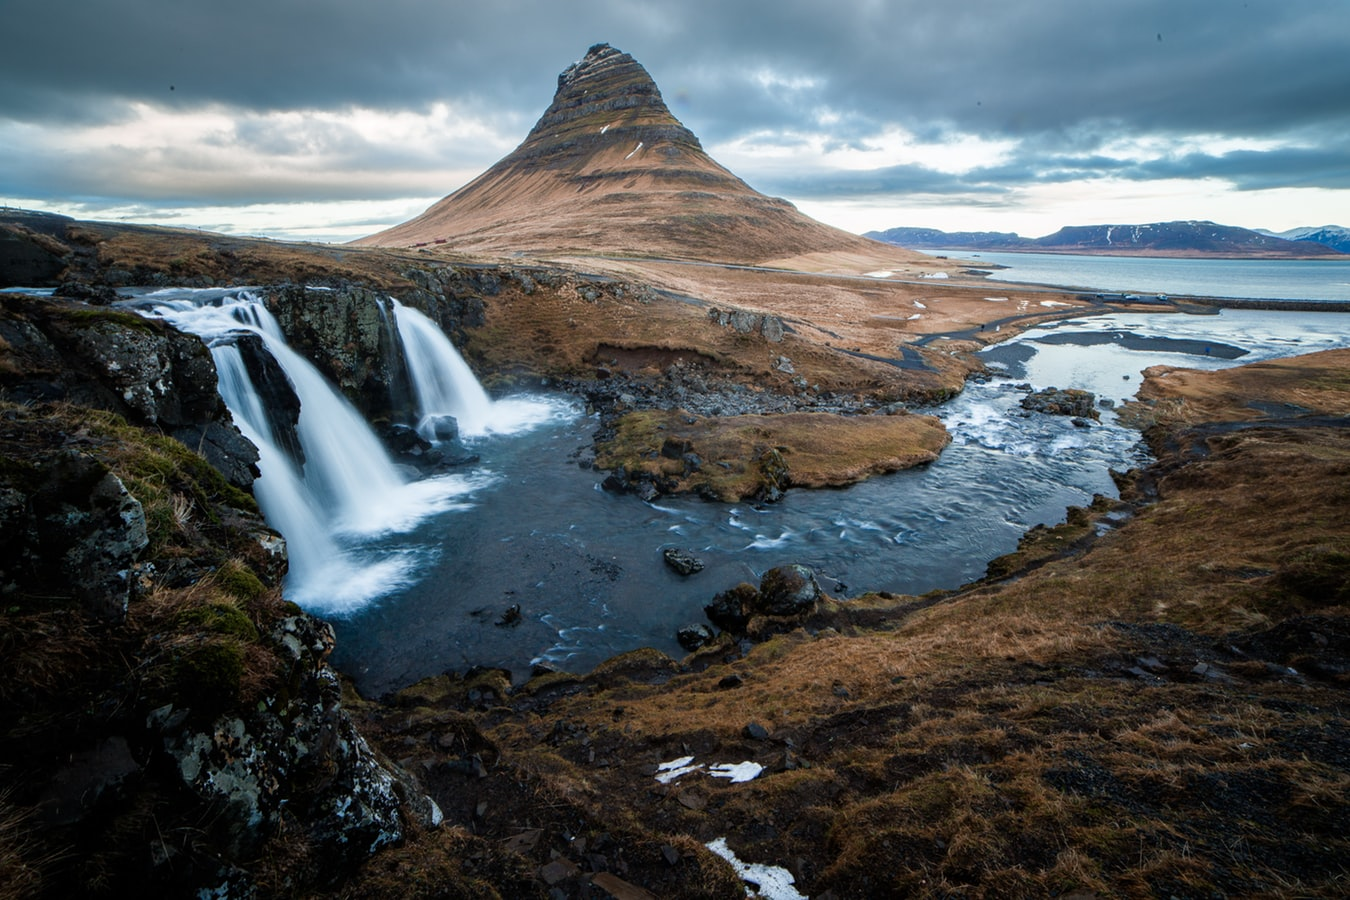 amazing landscape in iceland, waterfalls with mountains and lakes, destinations to visit in europe